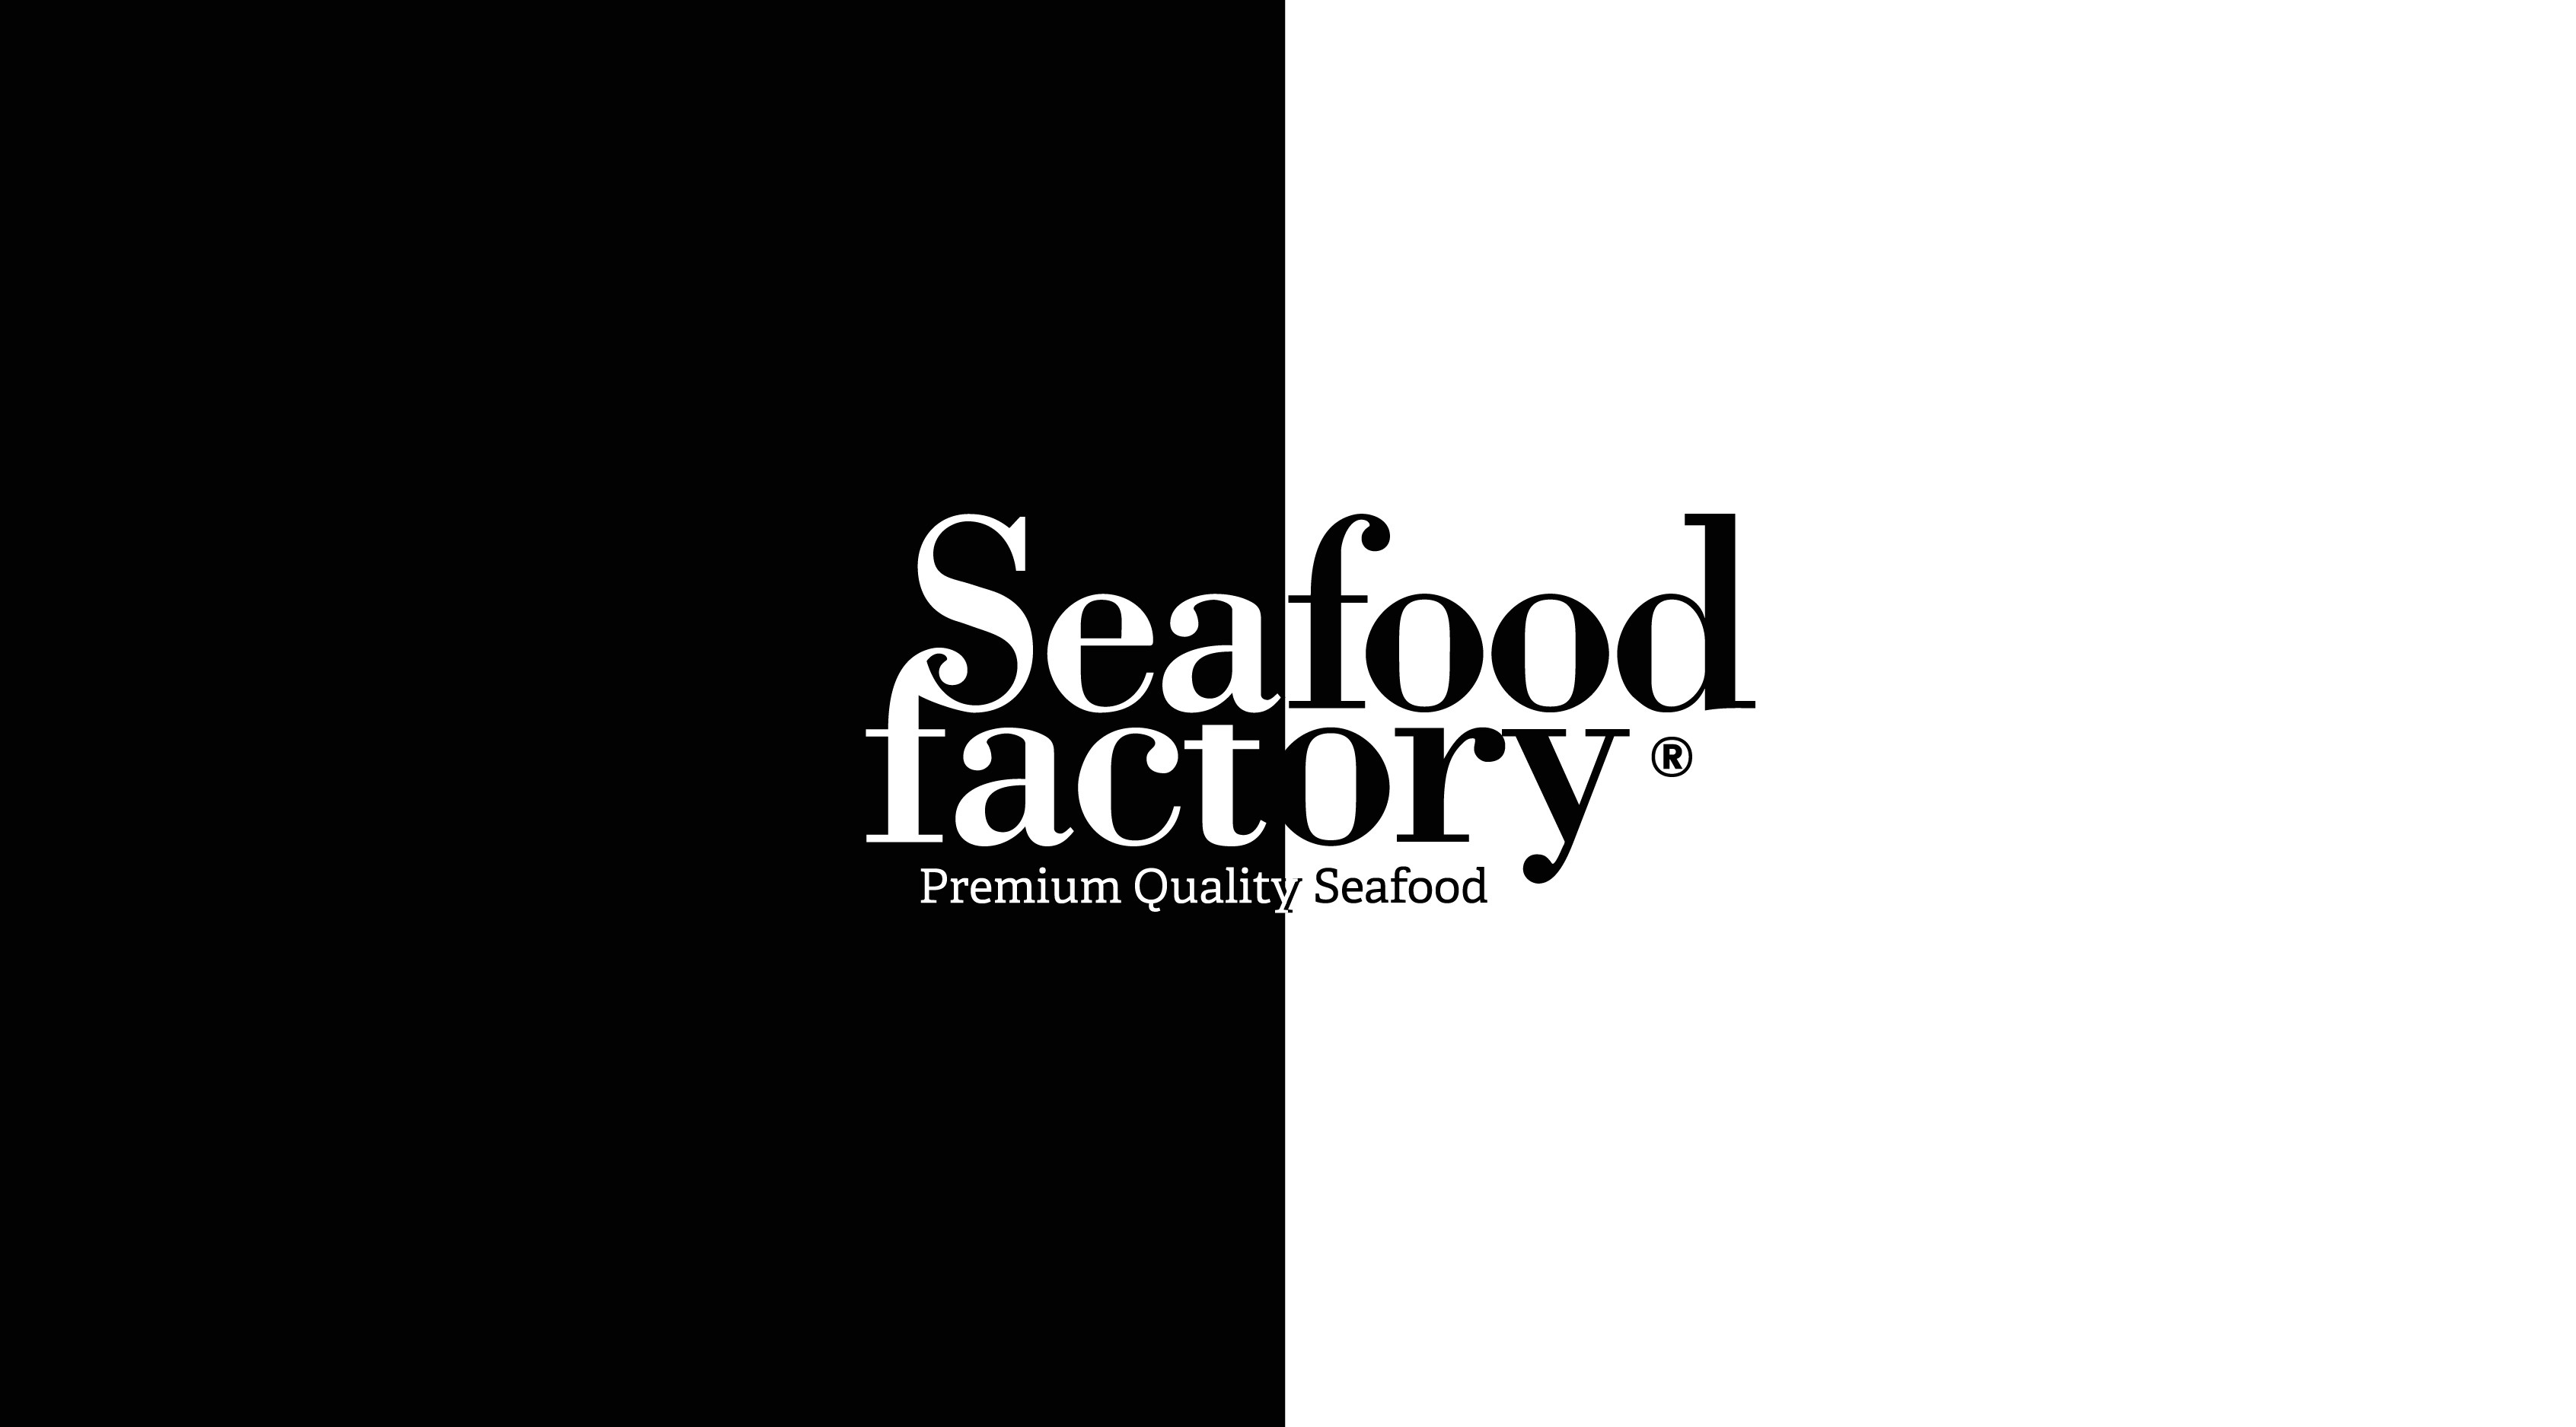 Seafood Factory